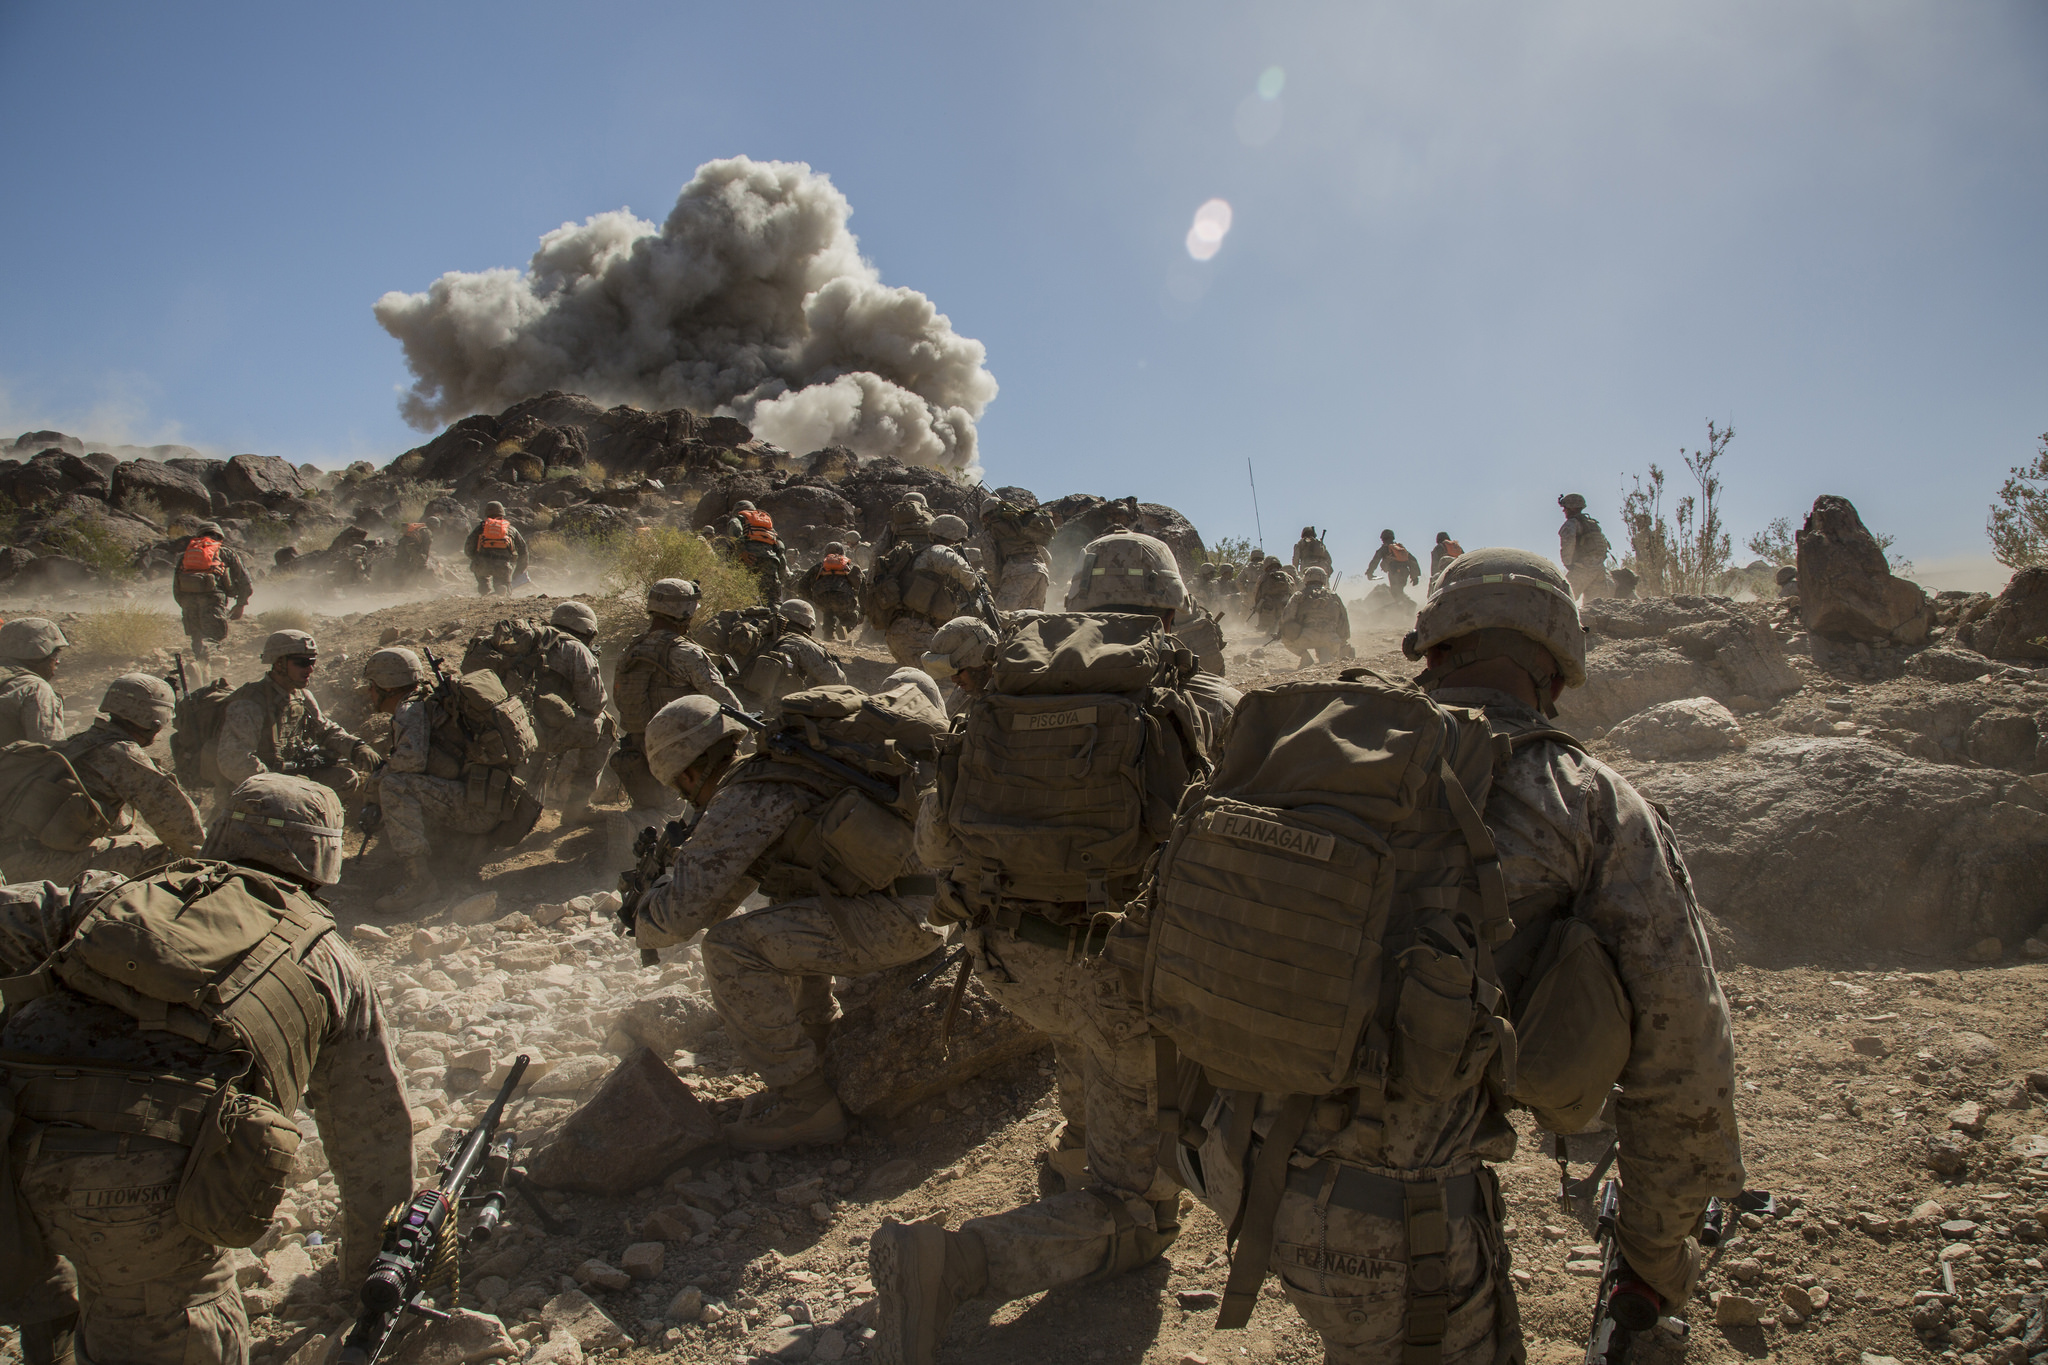 Marines conducting a training exercise, not executing judgment